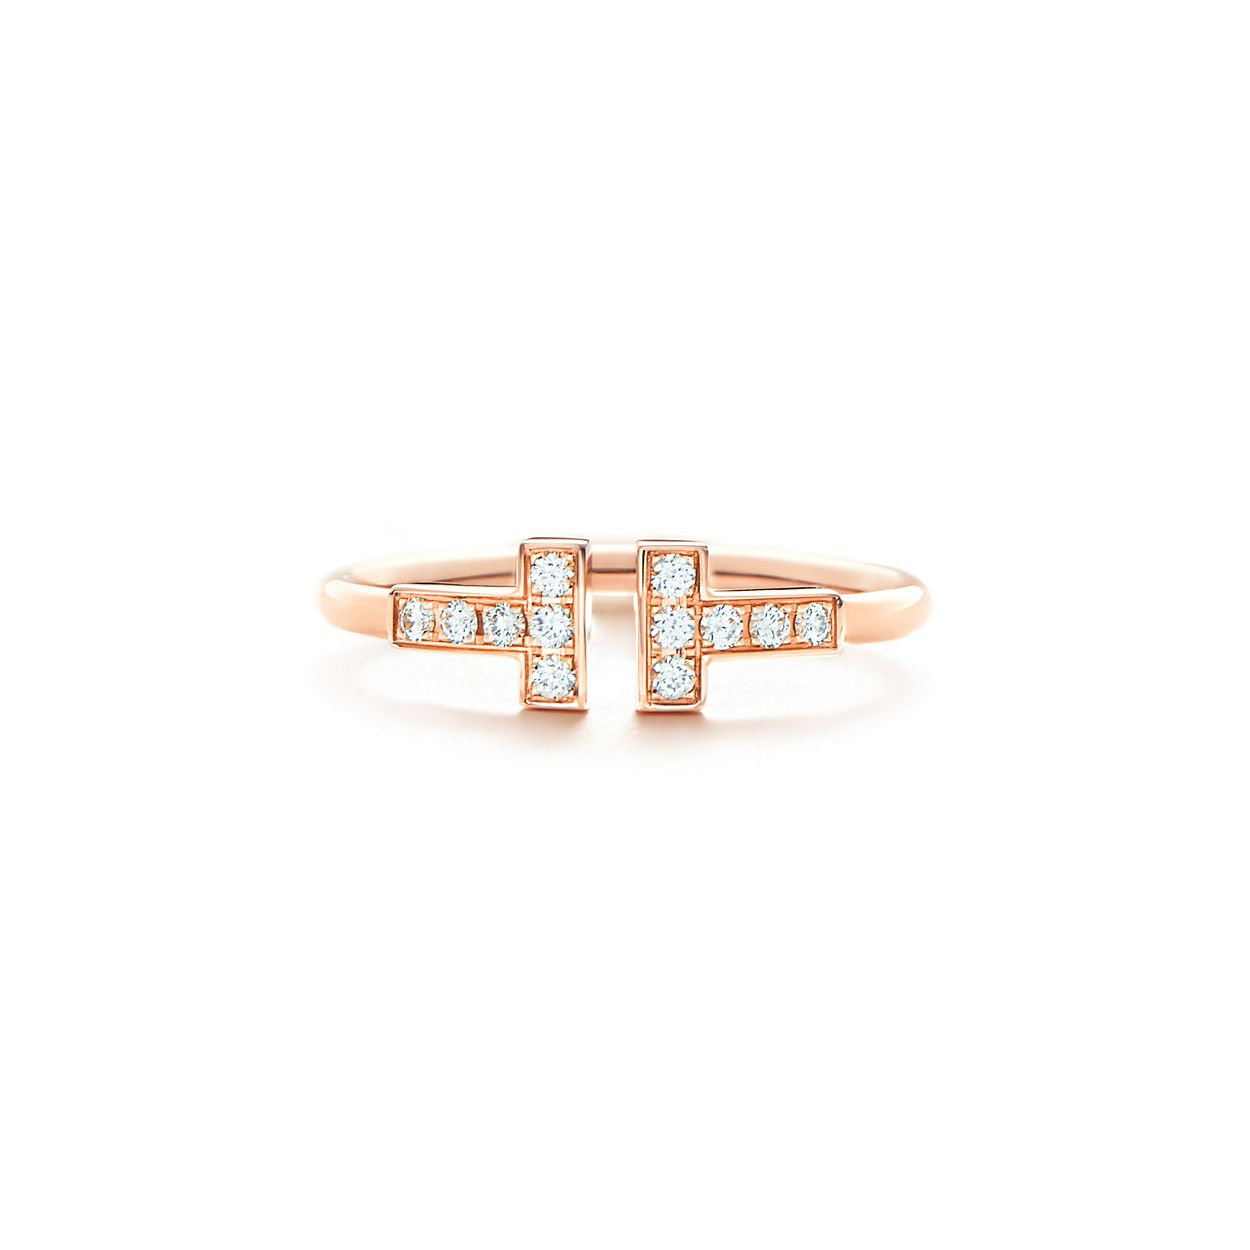 Tiffany T wire ring in 18k rose gold with diamonds. | Tiffany & Co.